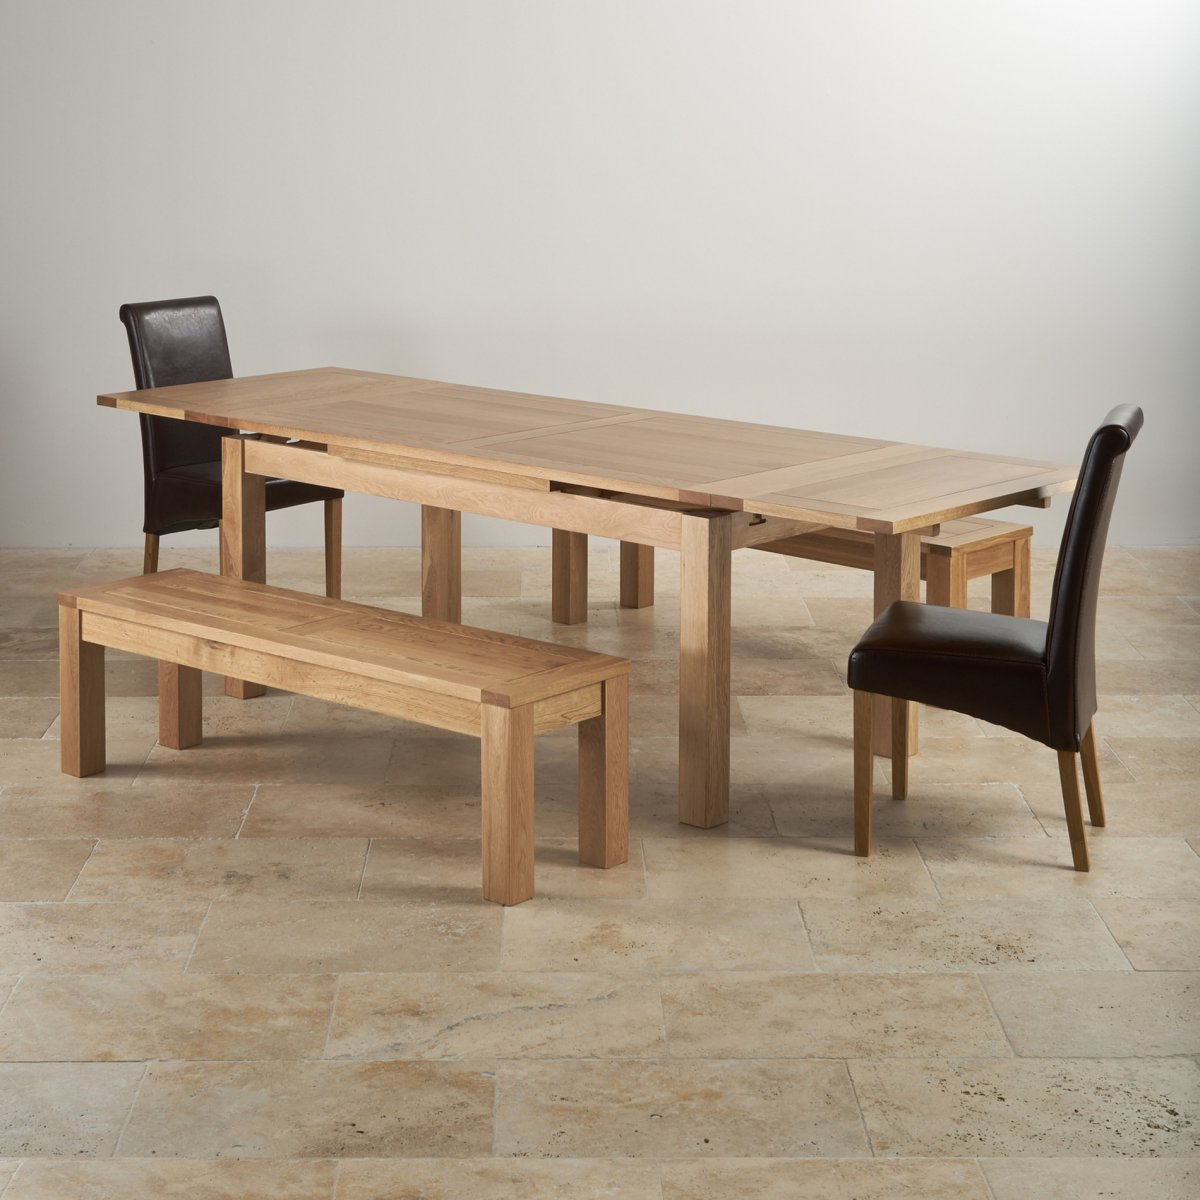 Dorset Dining Set Extending Table In Oak 6 Leather Chairs: Dorset Dining Set In Oak: Dining Table + 2 Benches & 2 Chairs